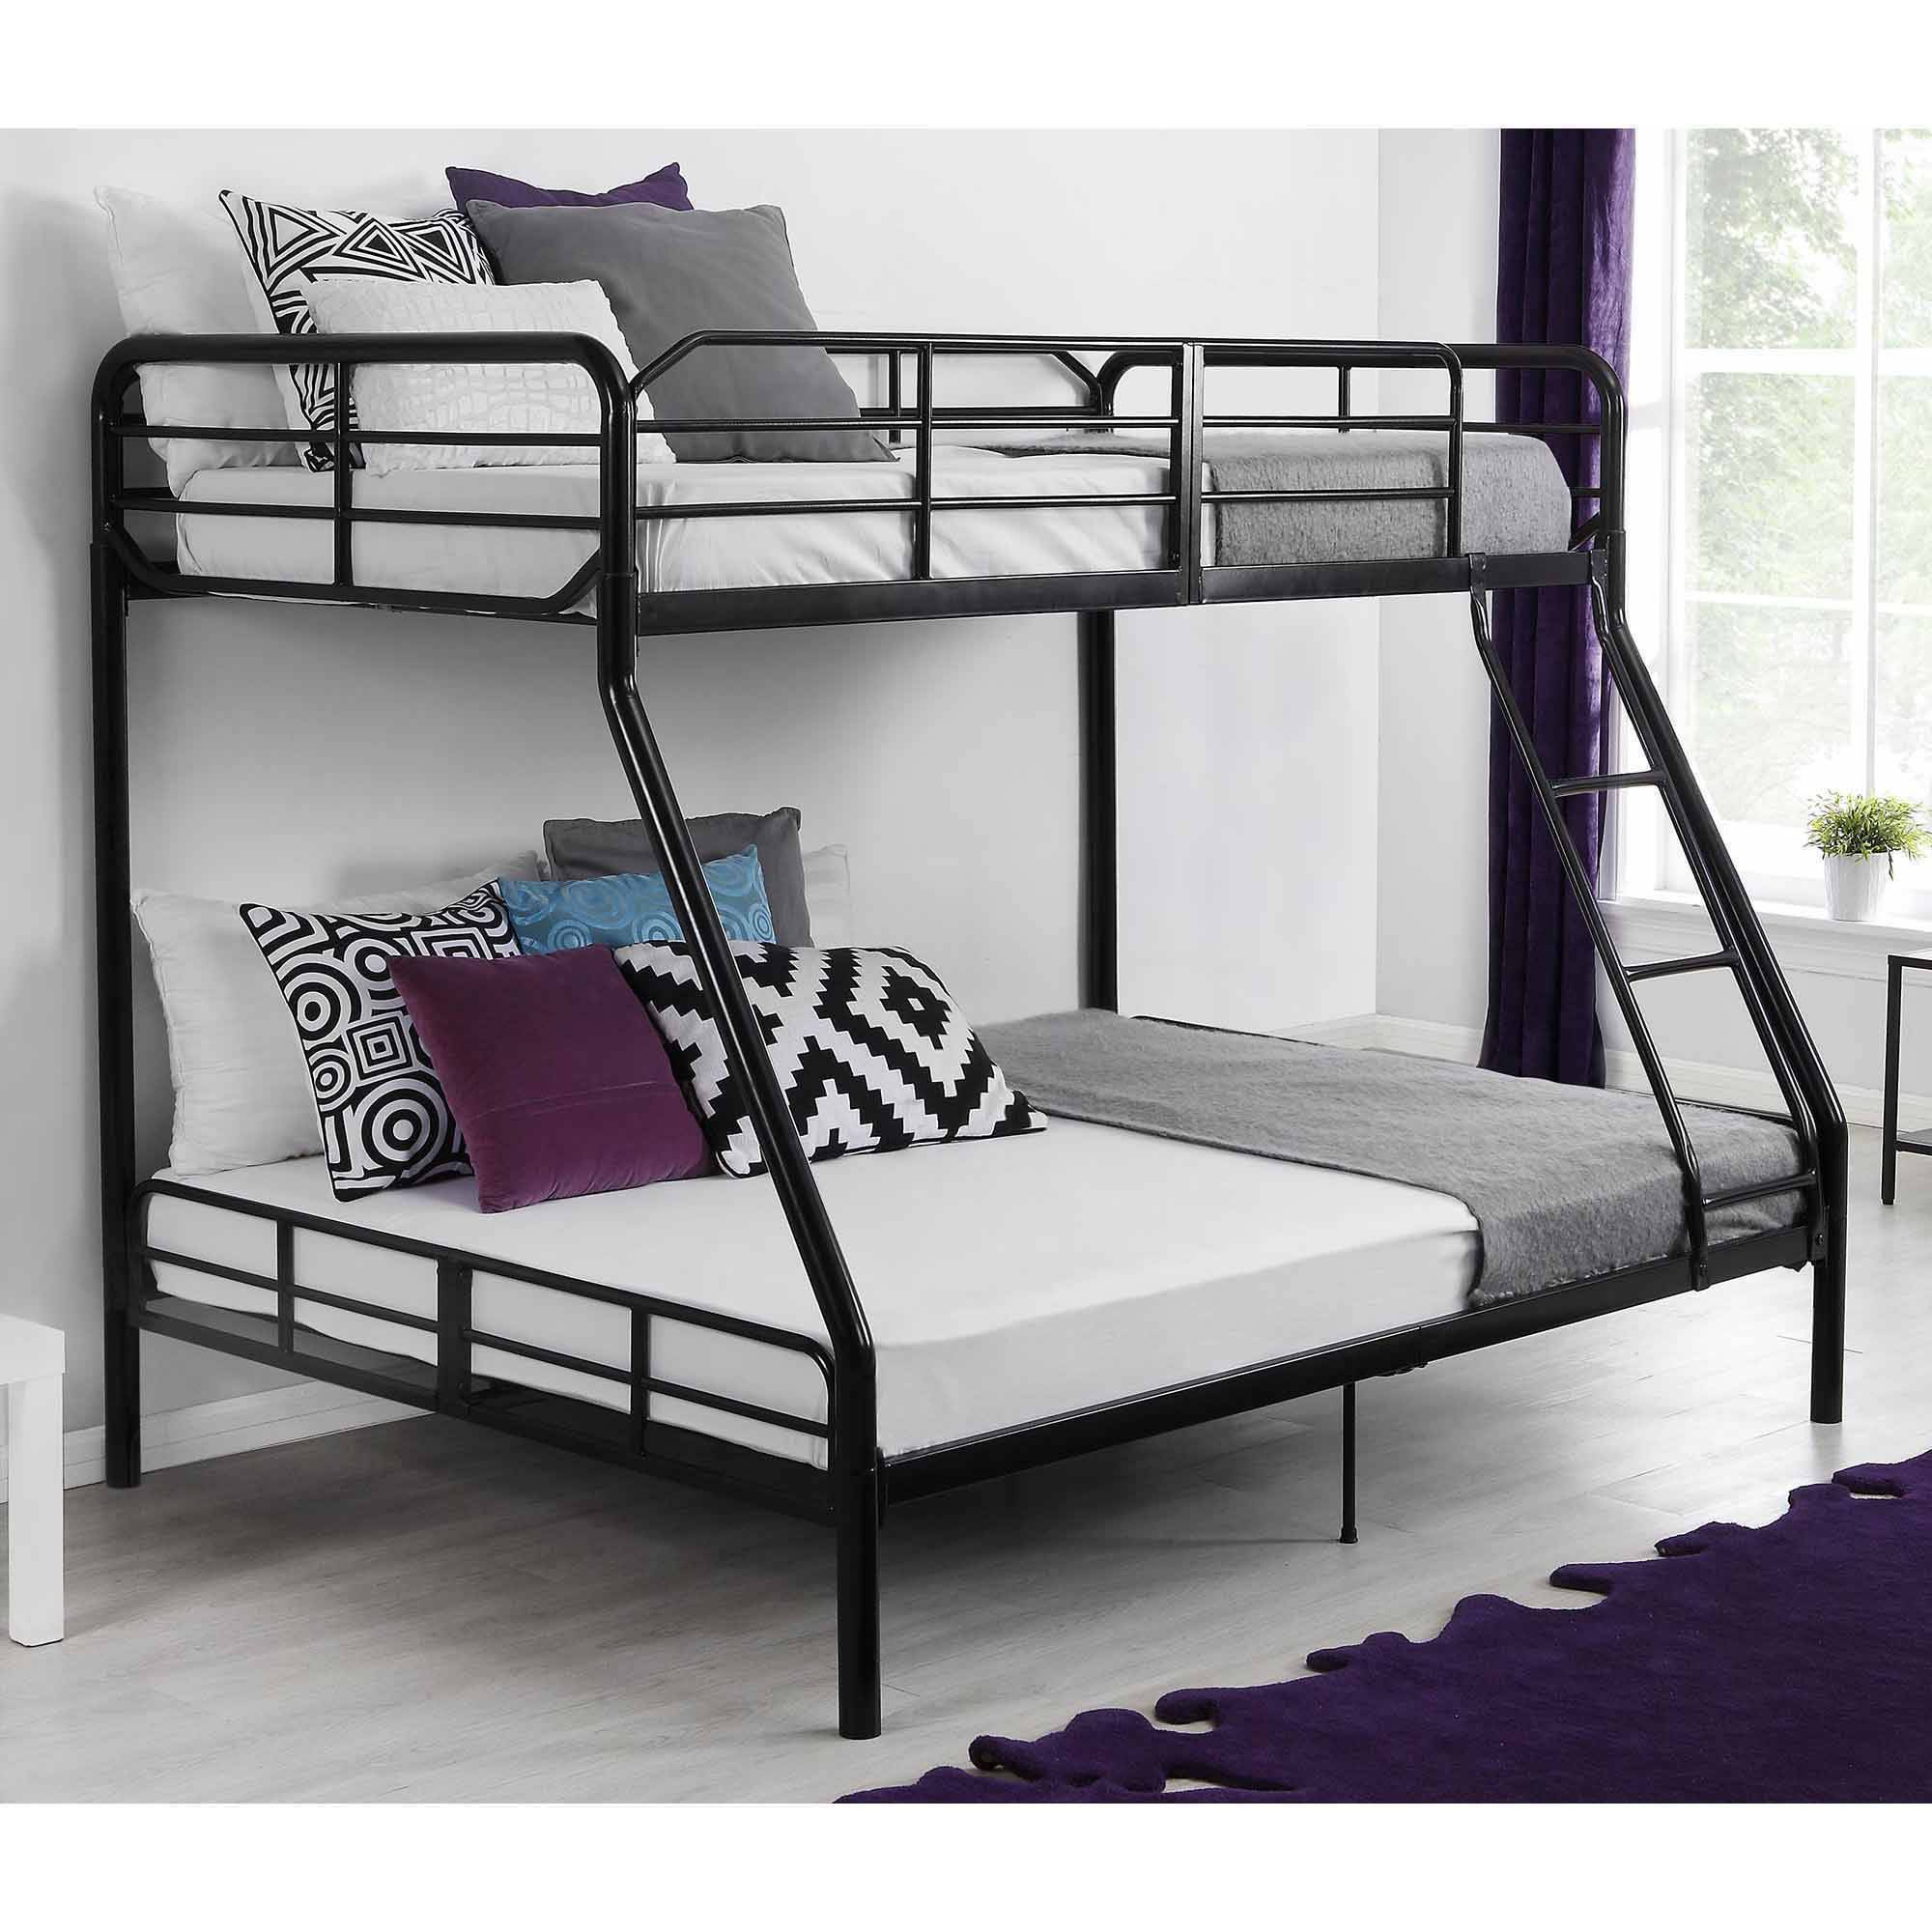 Details about Twin Over Full Metal Bunk Bed w/ Ladder Kids Bedroom  Furniture Dorm Loft